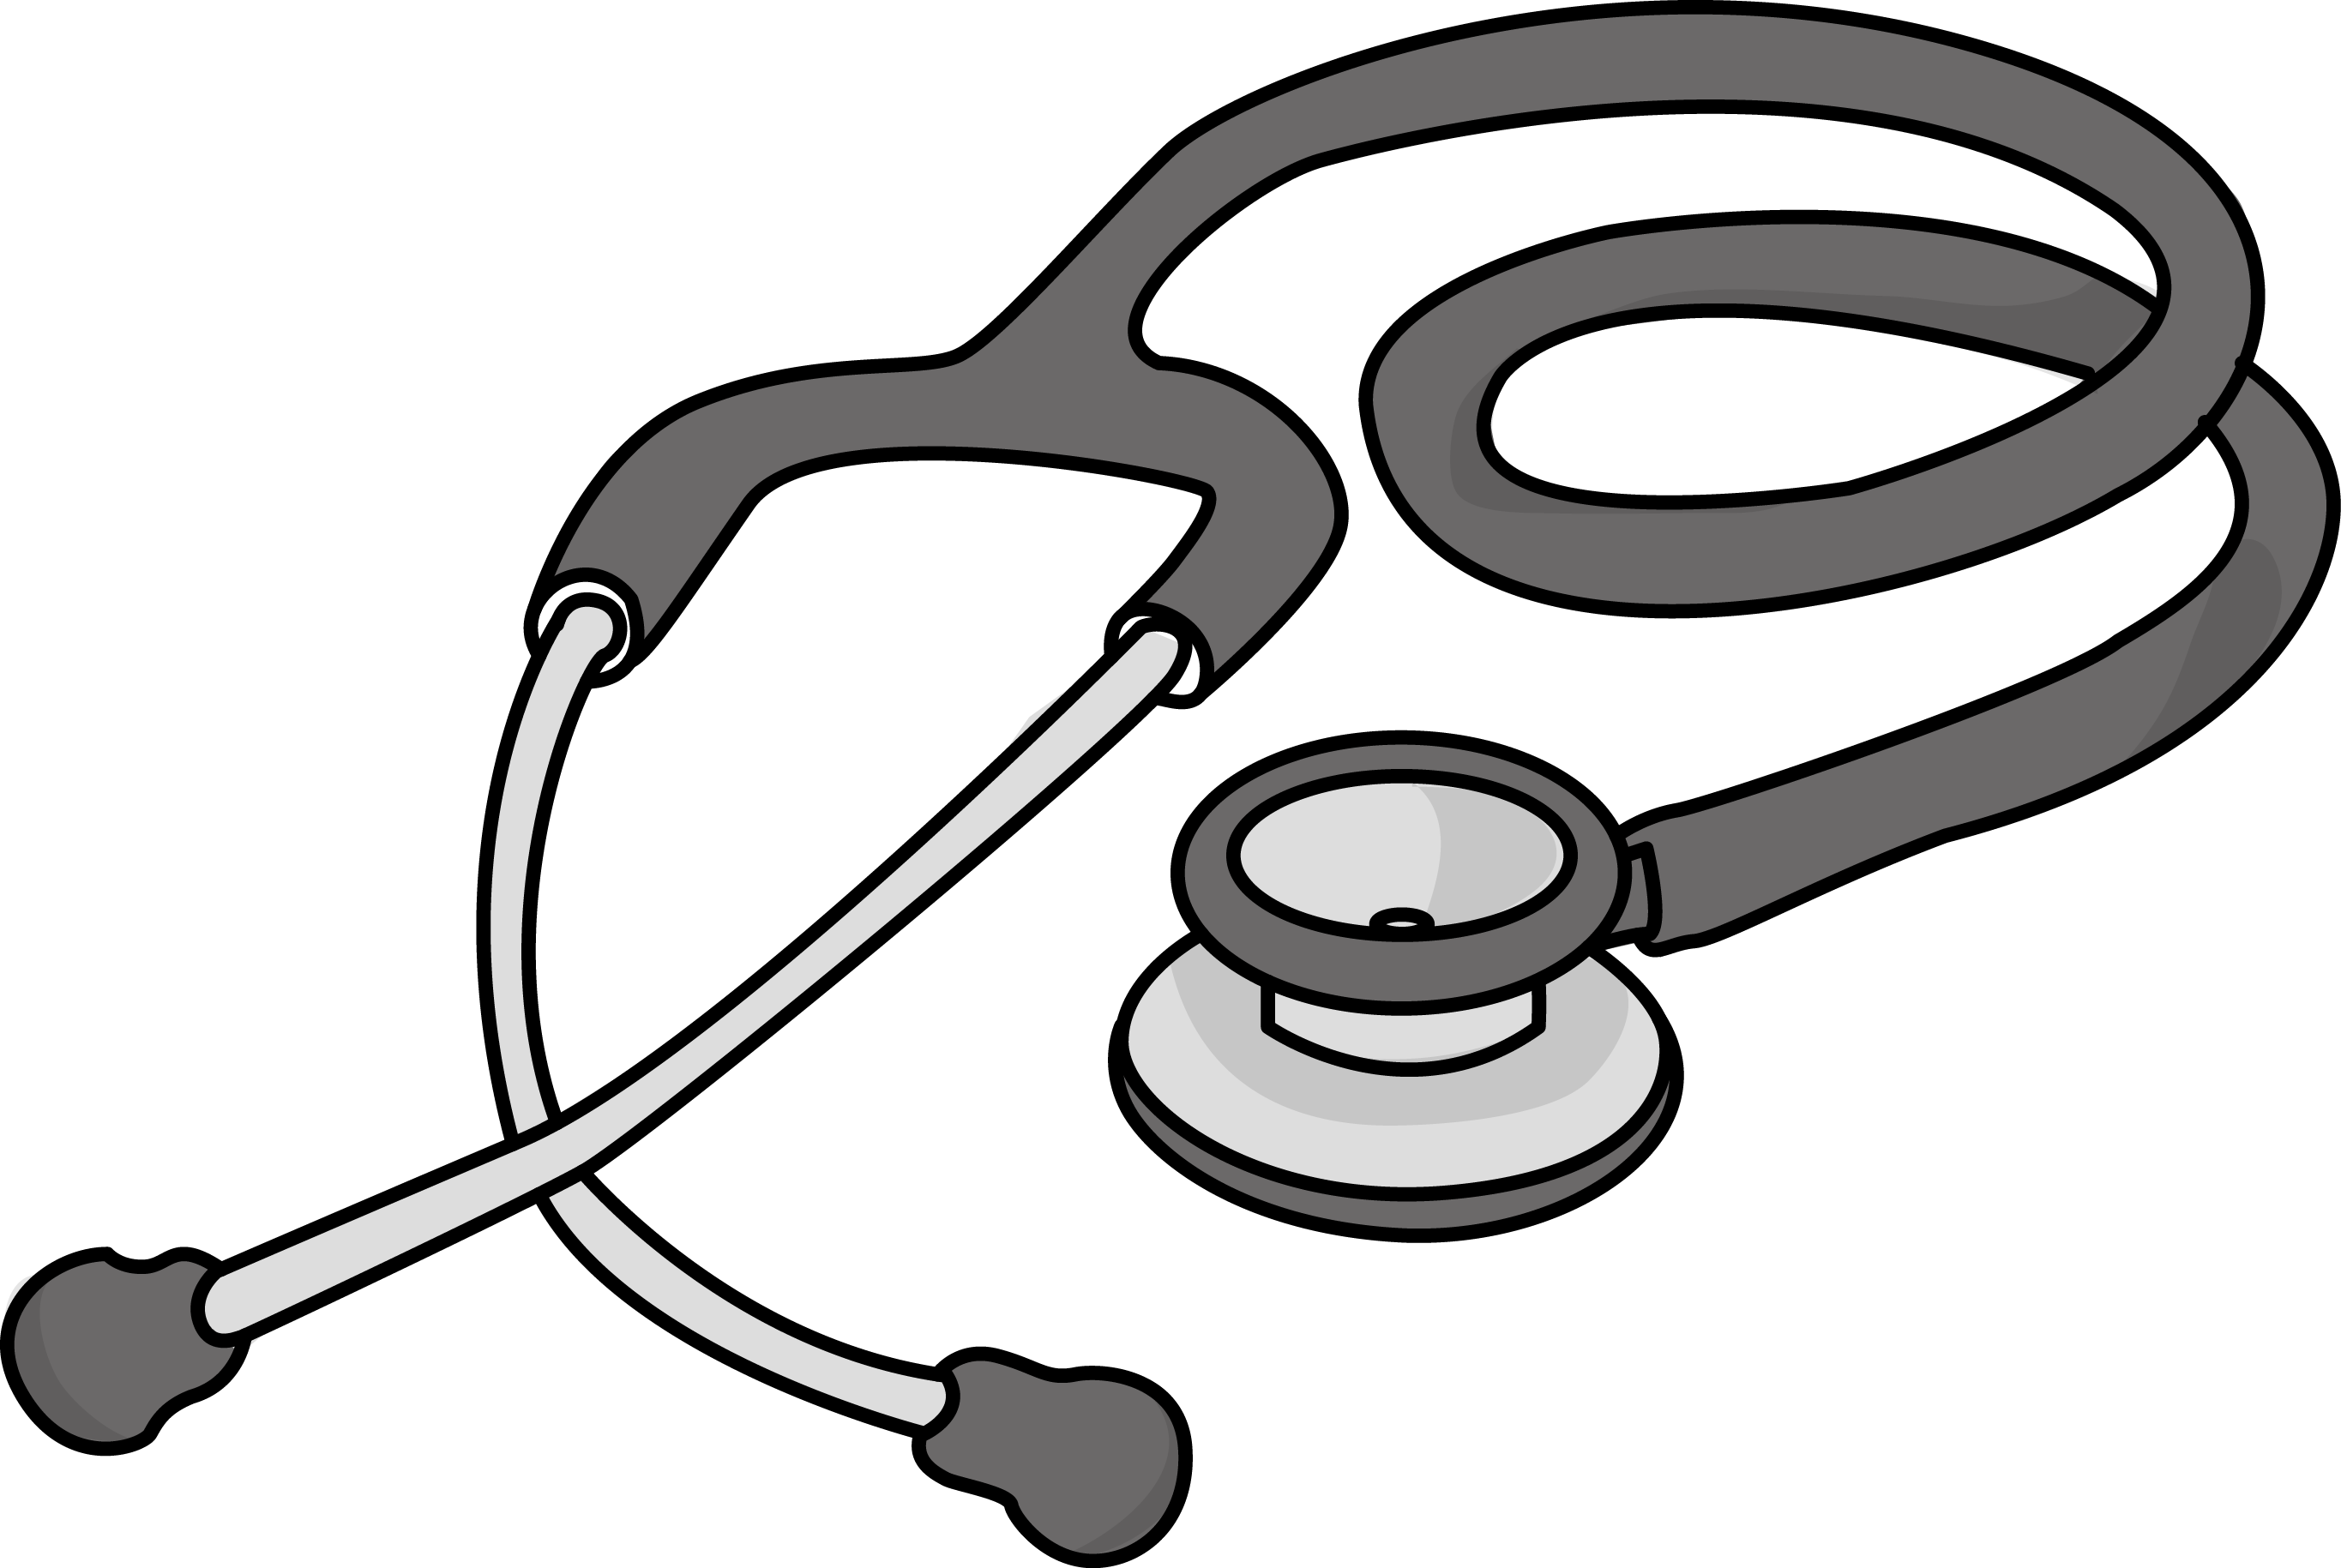 Doctor stethoscope clipart free for cellphone contacts clip art library Free cardiology stethoscope health high resolution clip art ... clip art library